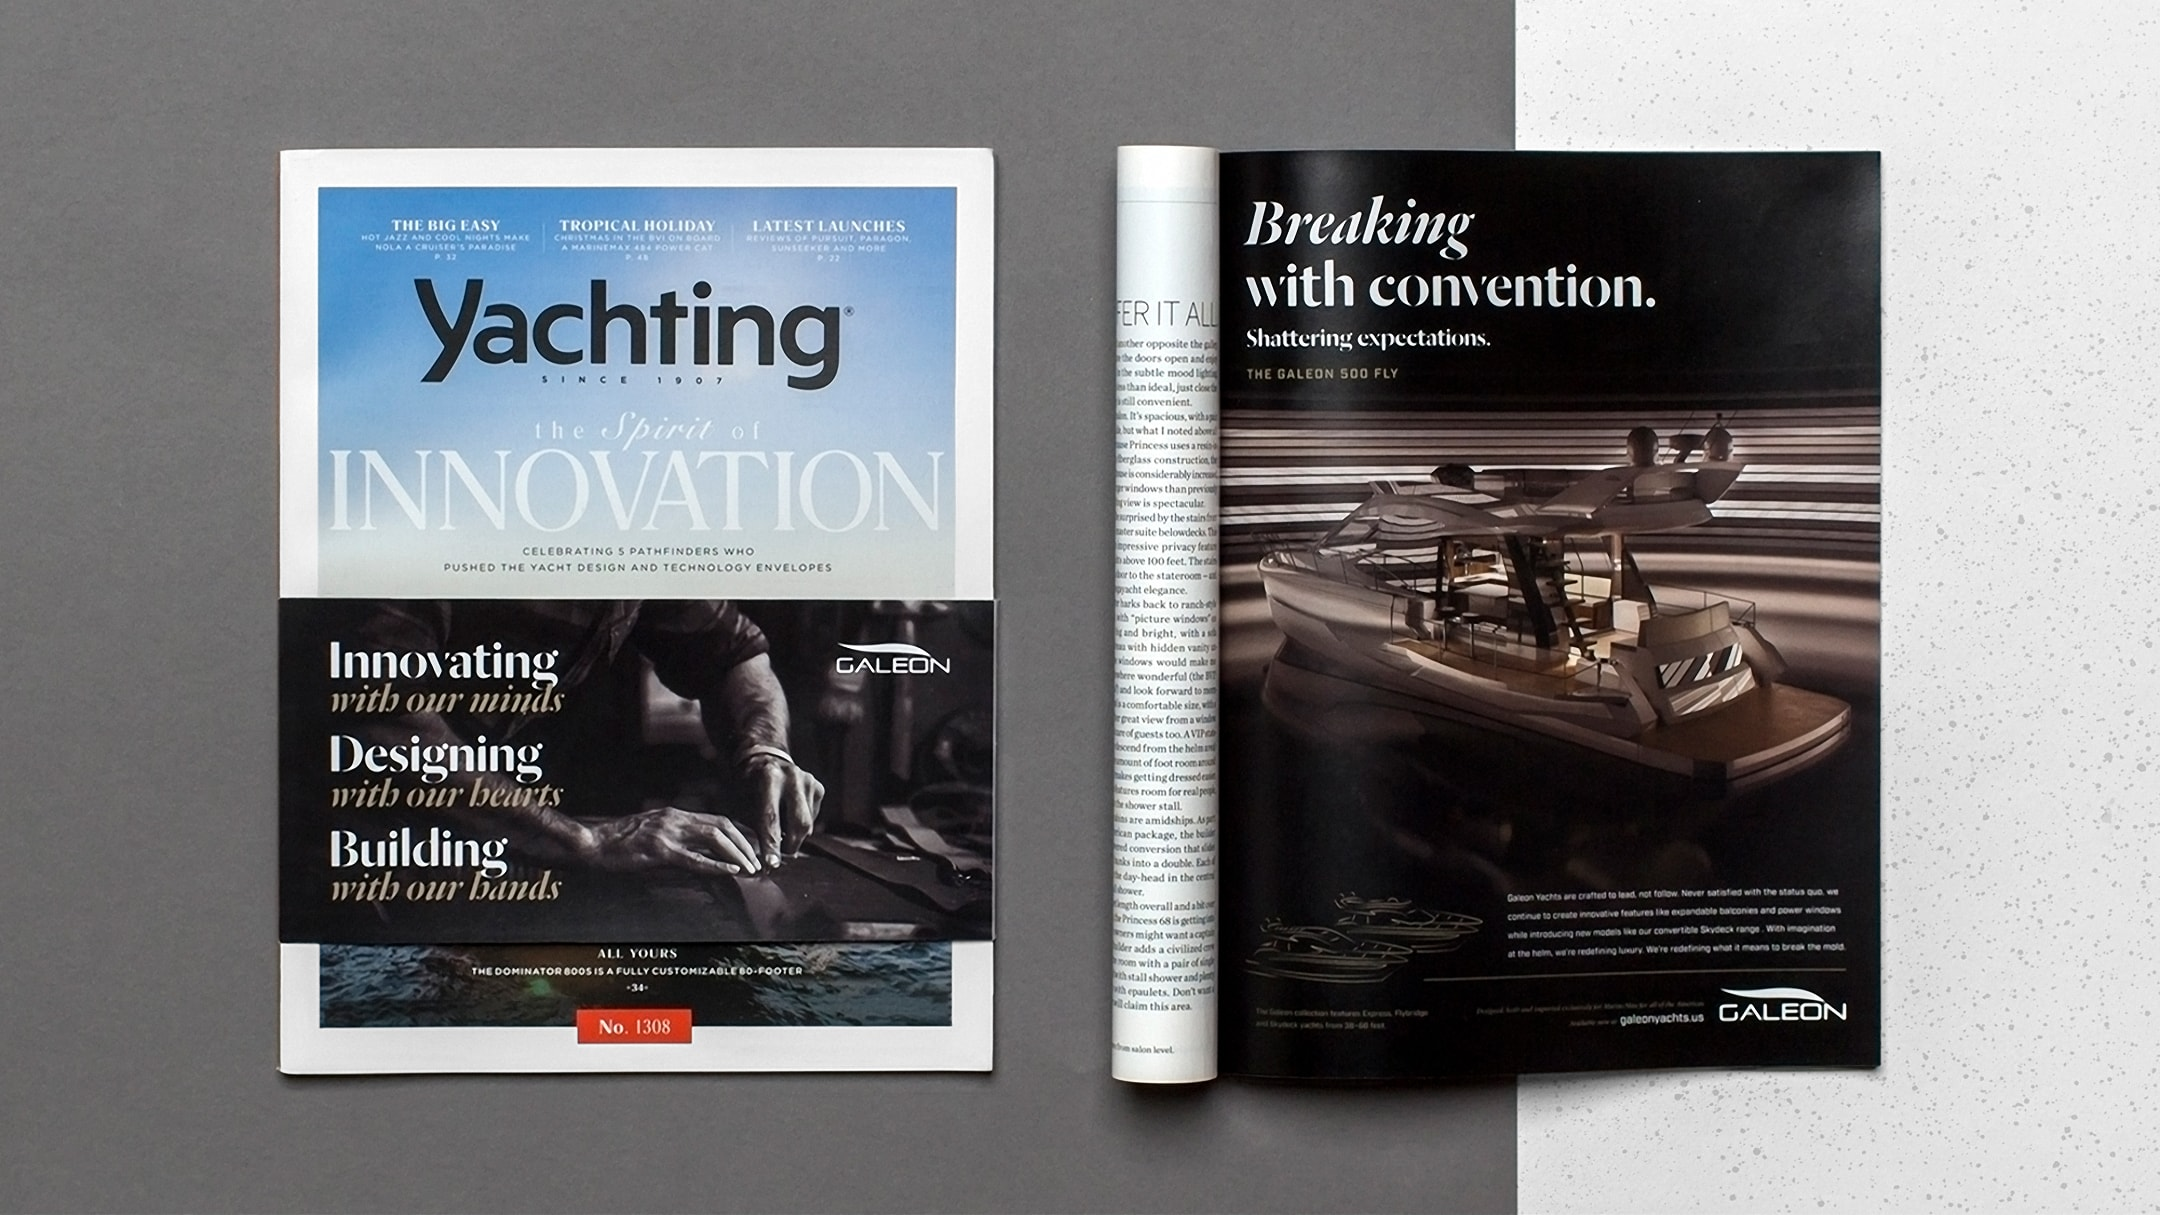 Galeon Yachts print advertisement placed in Yachting Magazine for their break the mold yacht campaign.